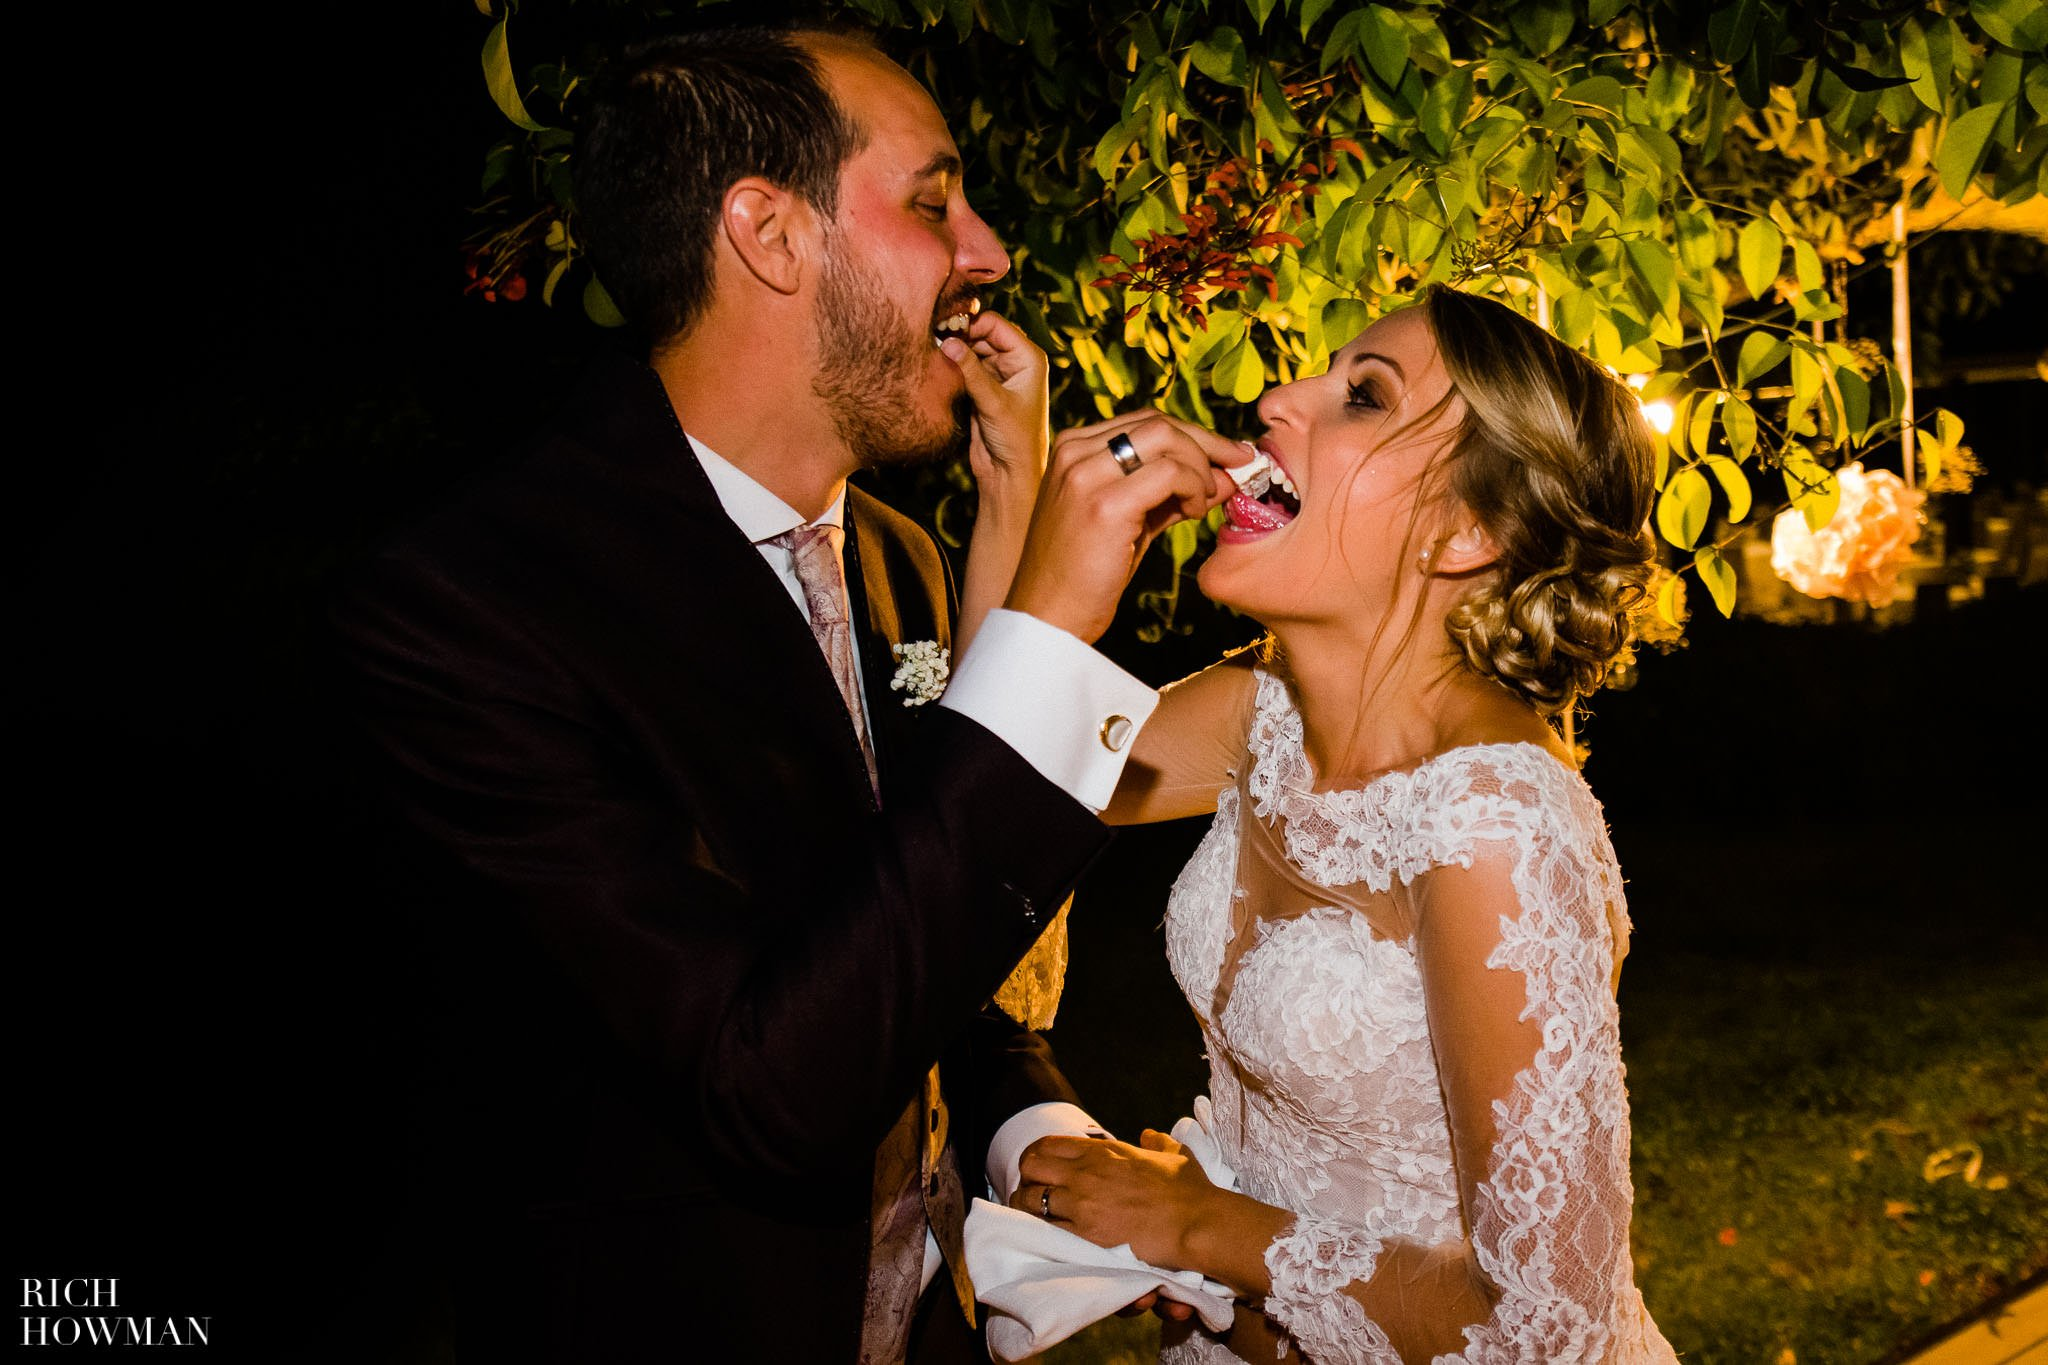 Destination Wedding Photographers in Italy 600